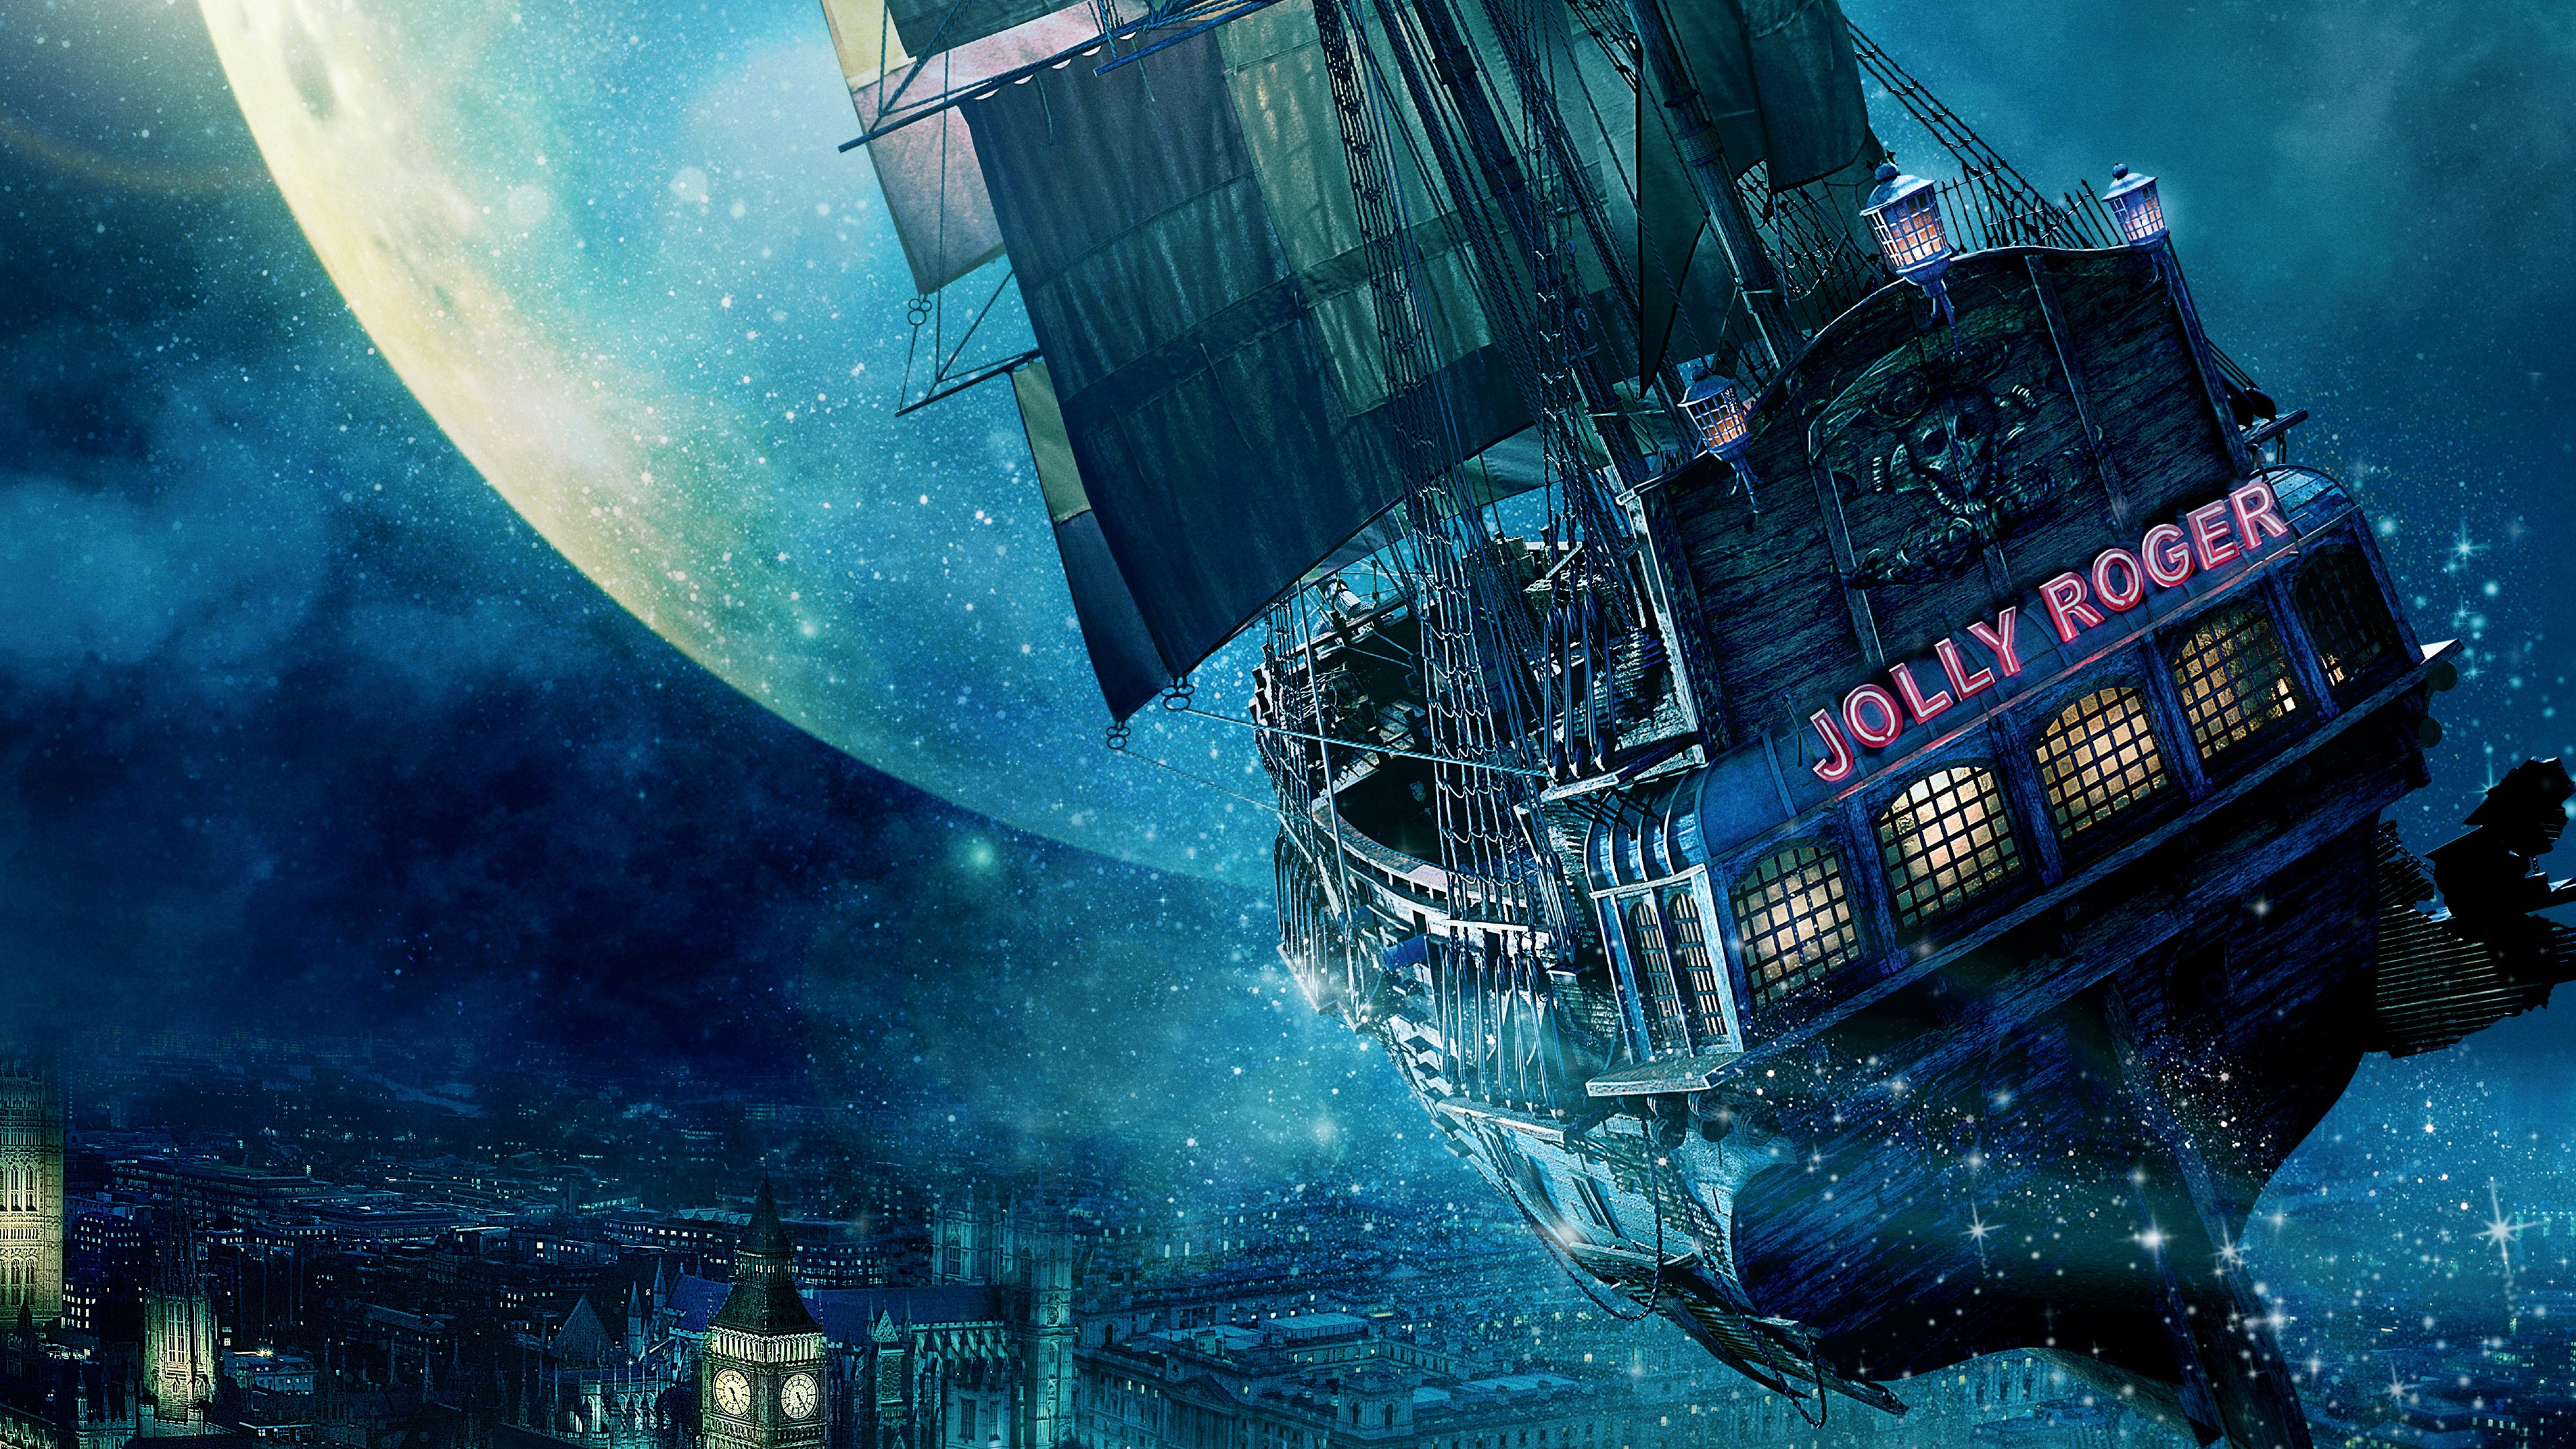 Jolly Roger Ship Peter Pan Wallpapers in jpg format for free